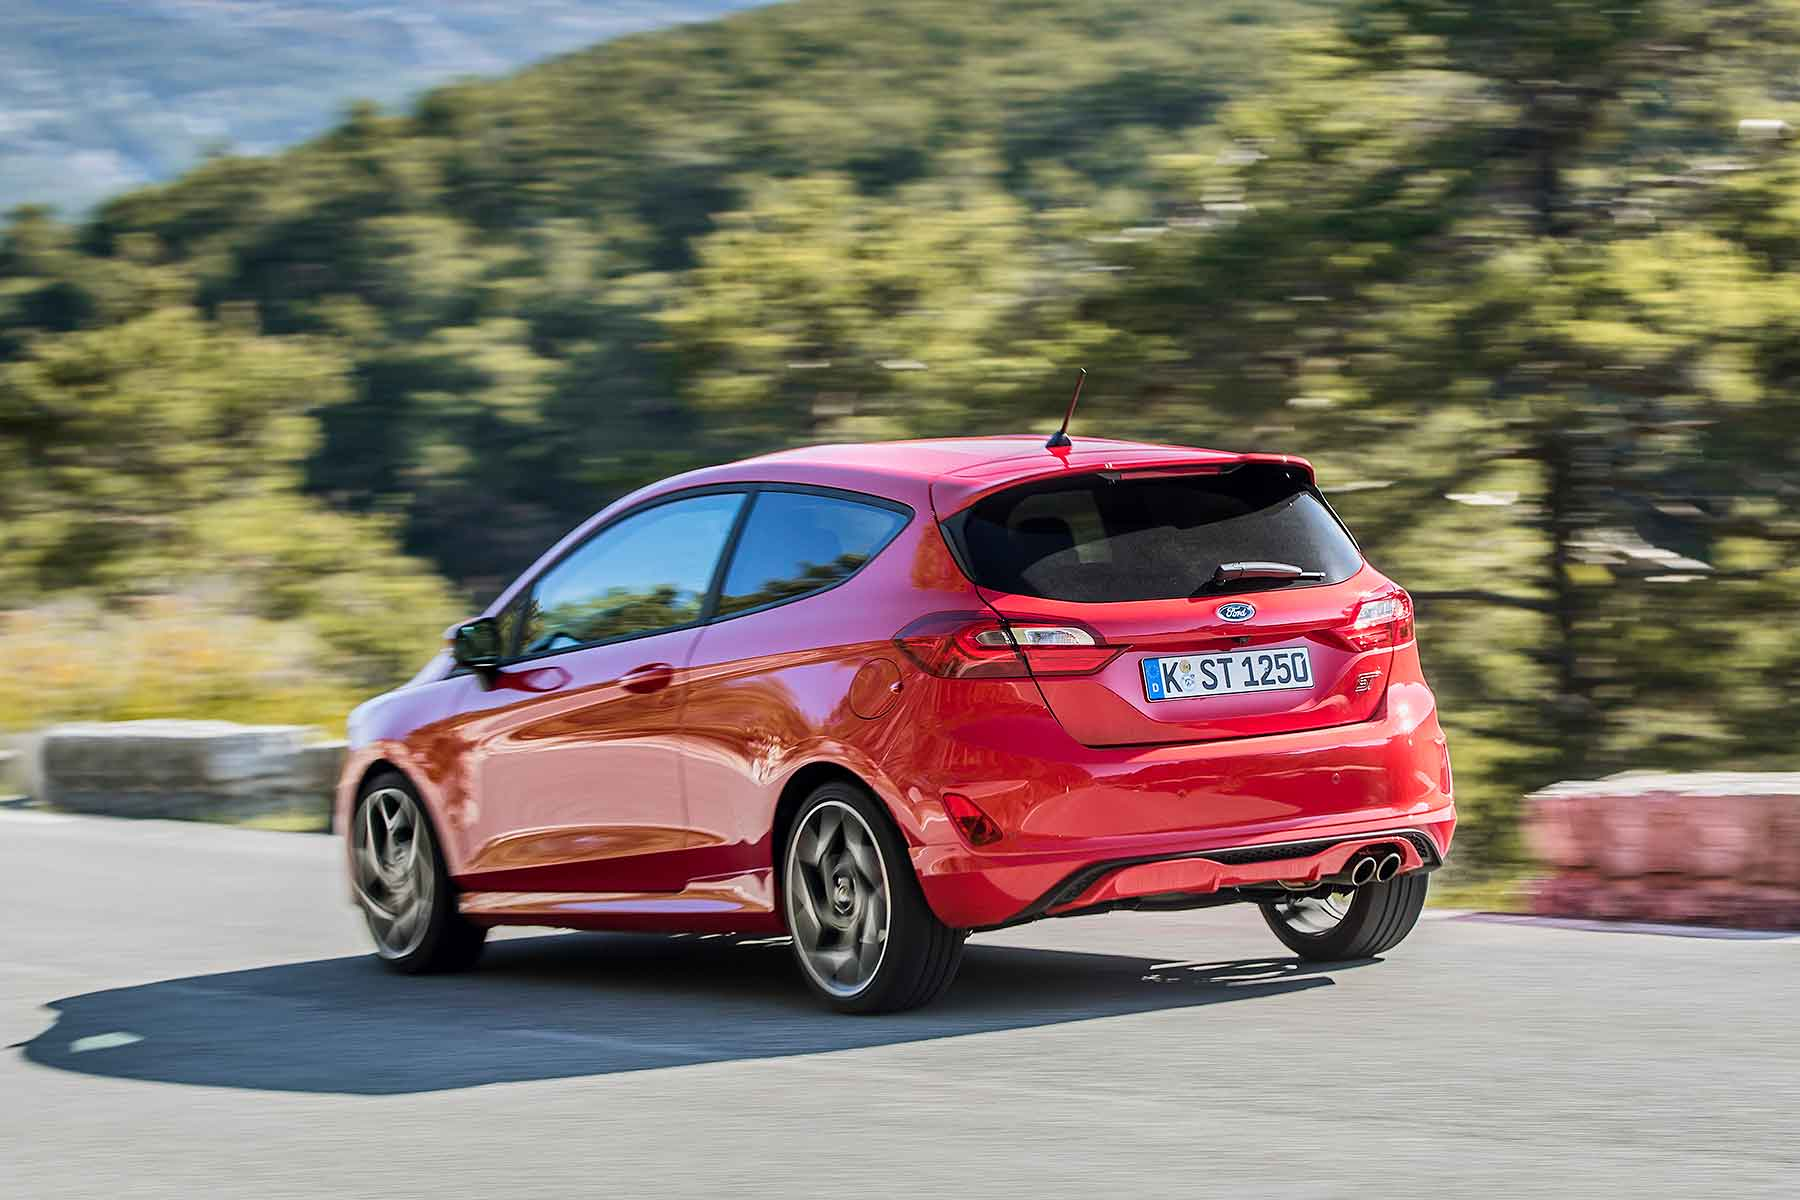 2018 Ford Fiesta ST in Race Red